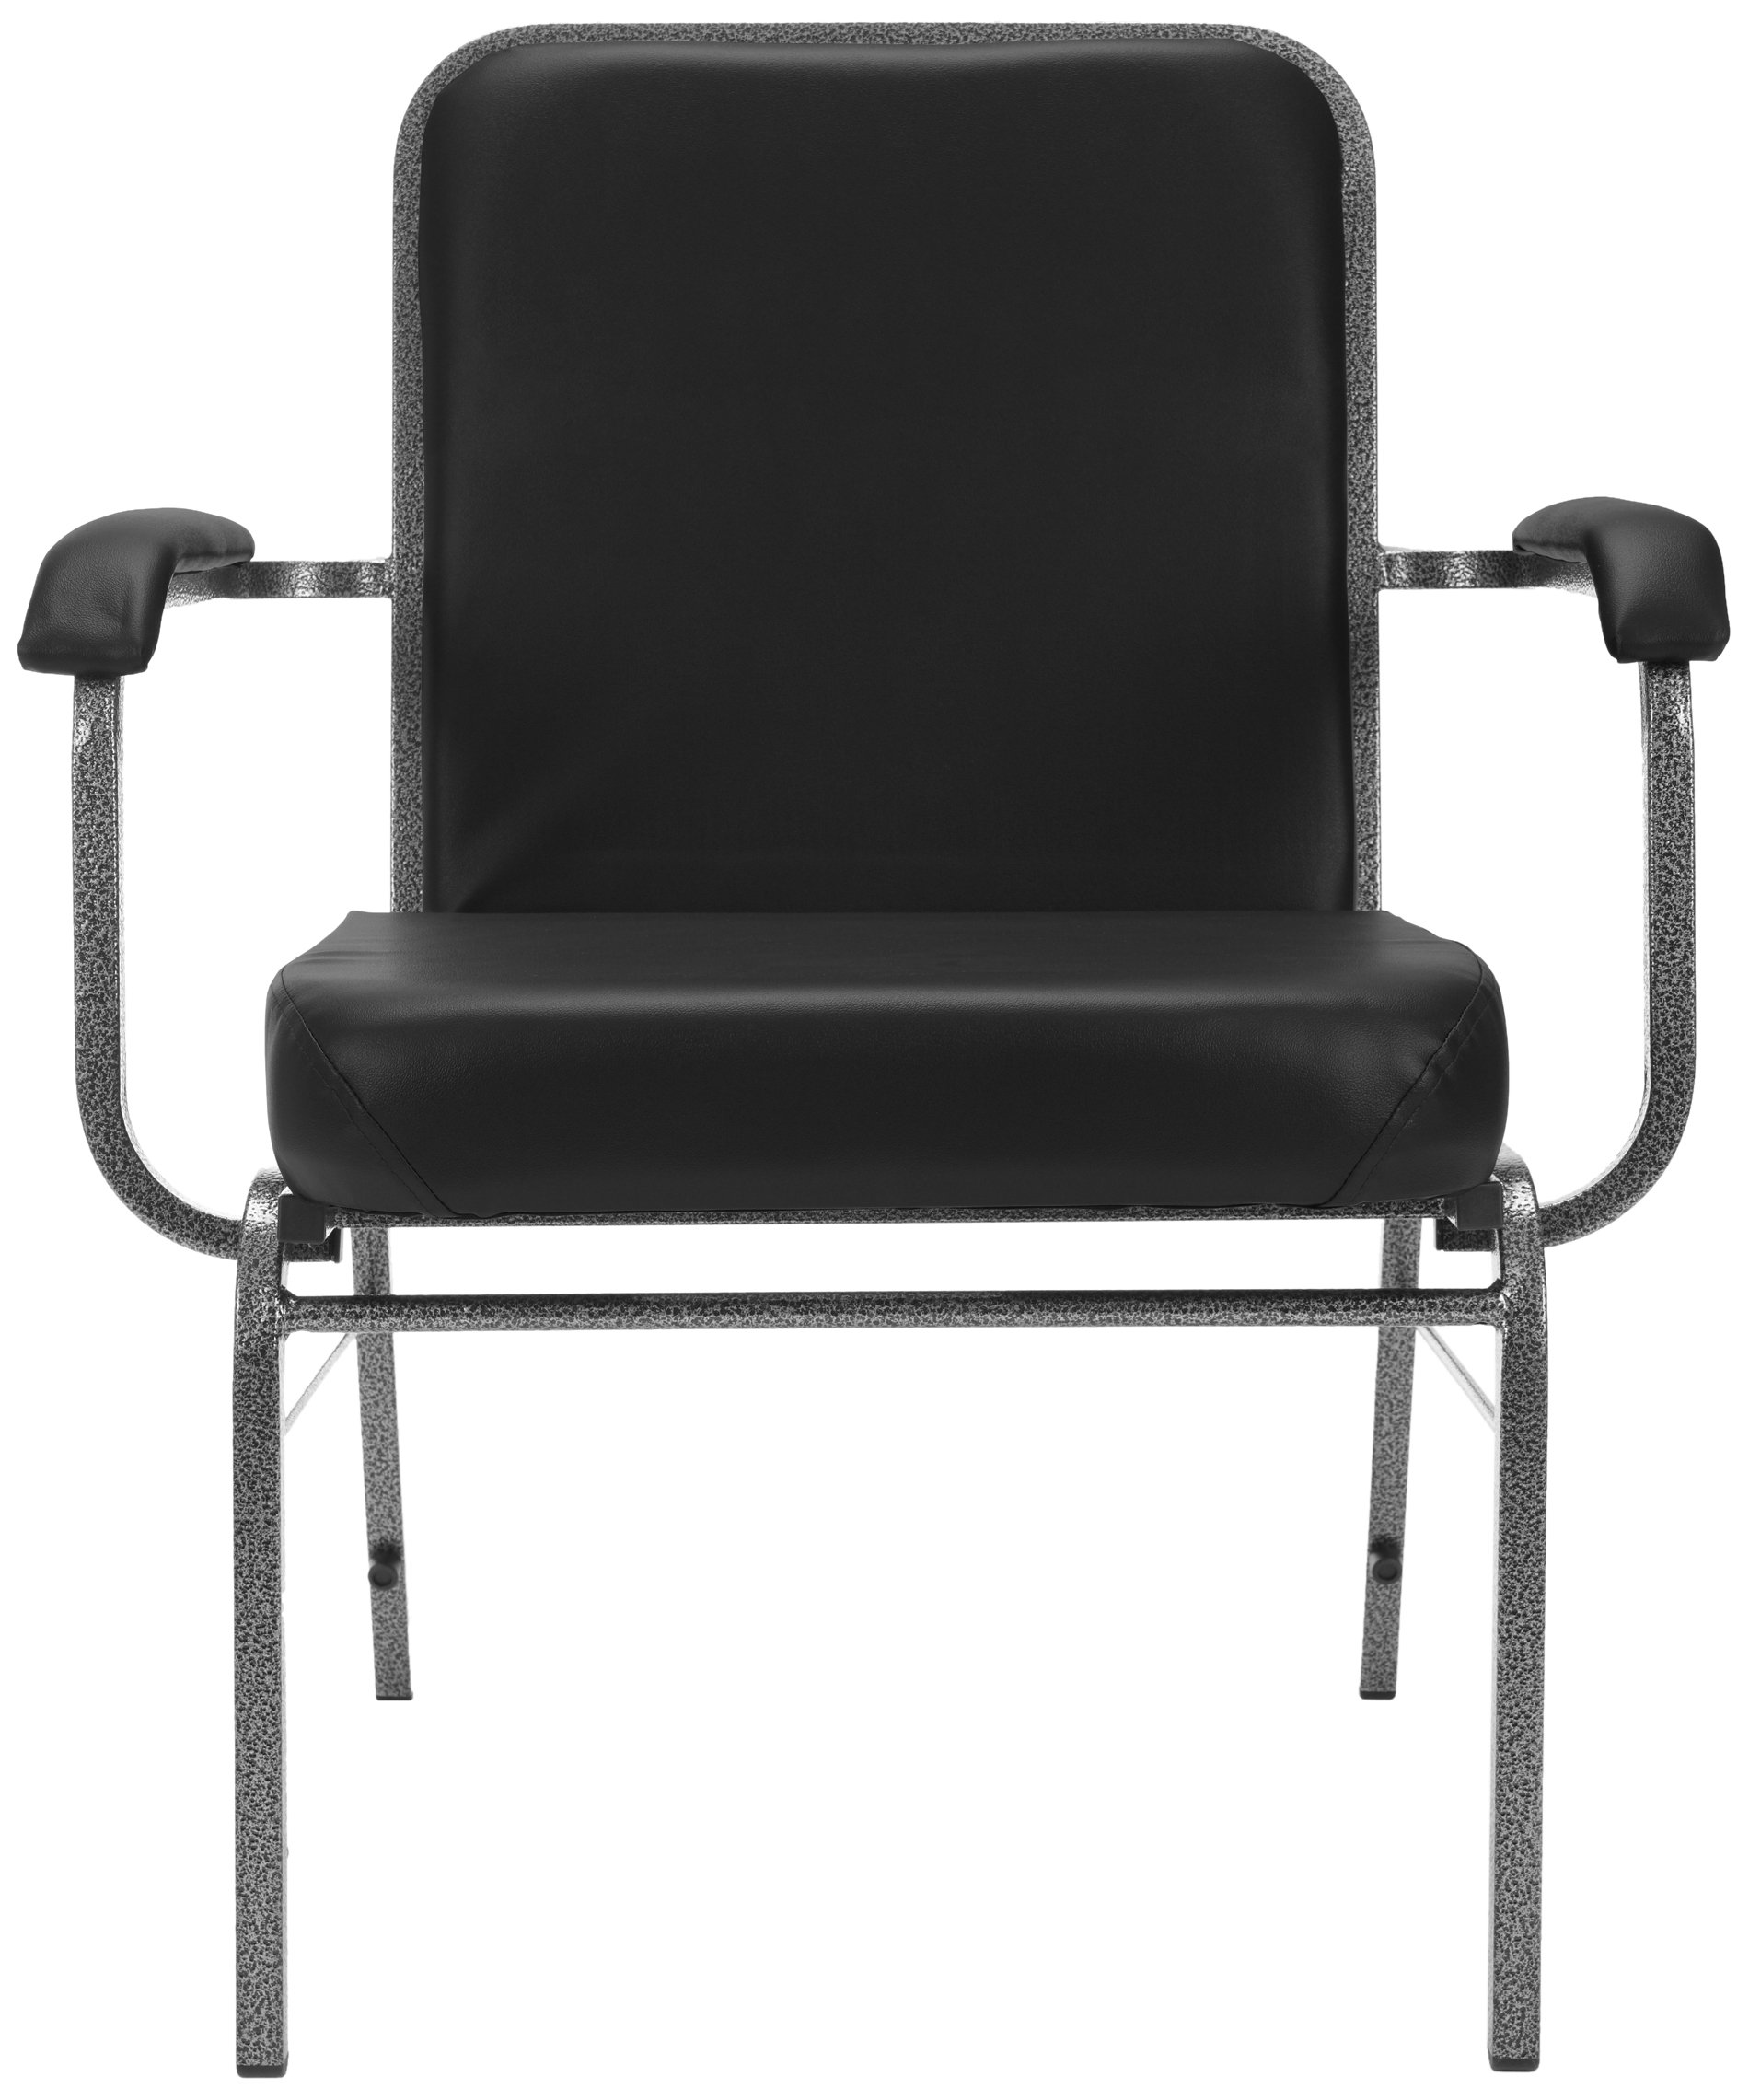 OFM Big and Tall Comfort Class Series Anti-Microbial/Anti-Bacterial Vinyl Arm Chair, Black